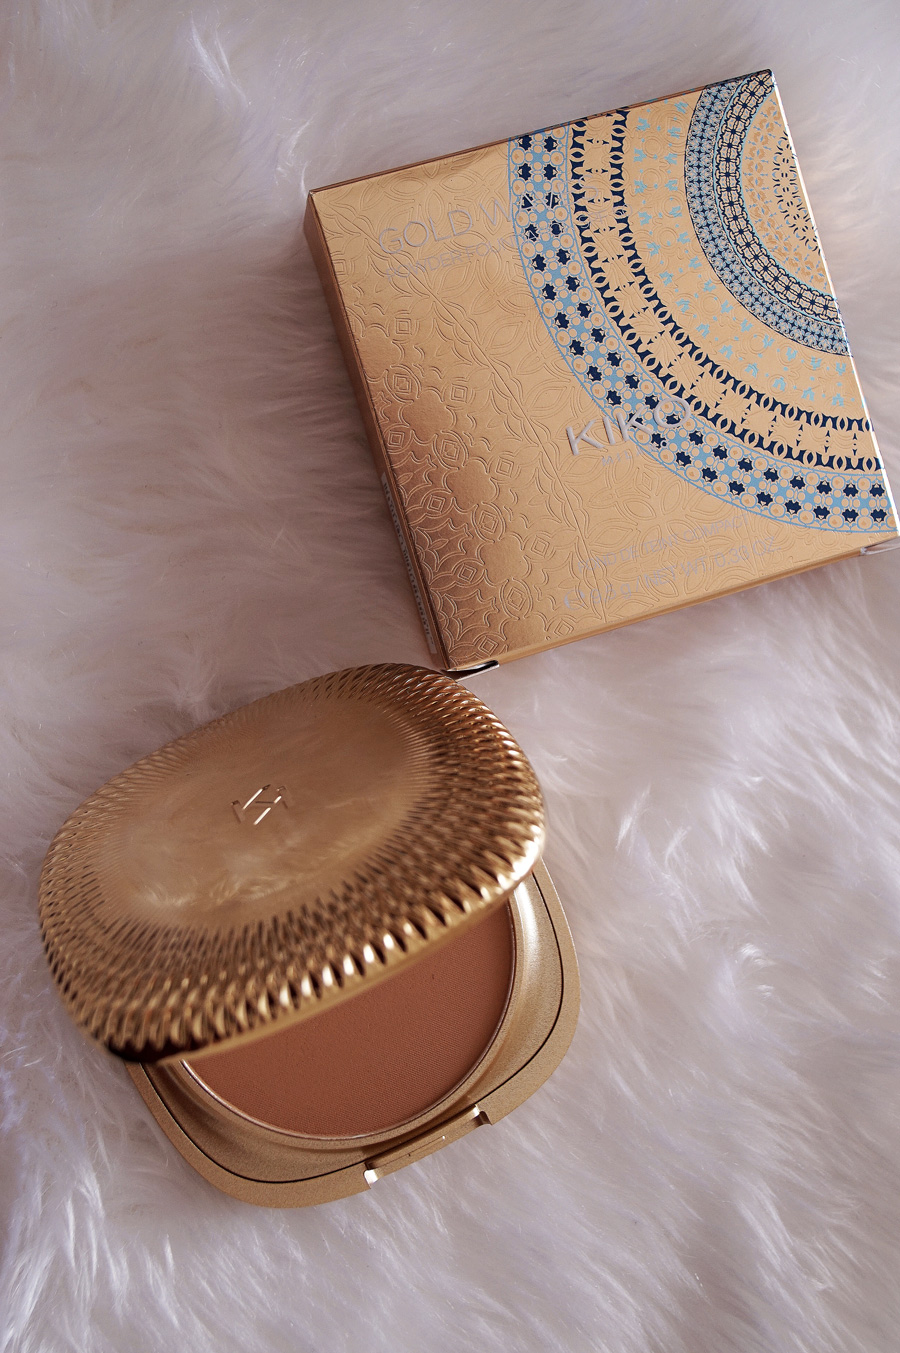 kiko-gold-waves-compact-foundation-05.jpg